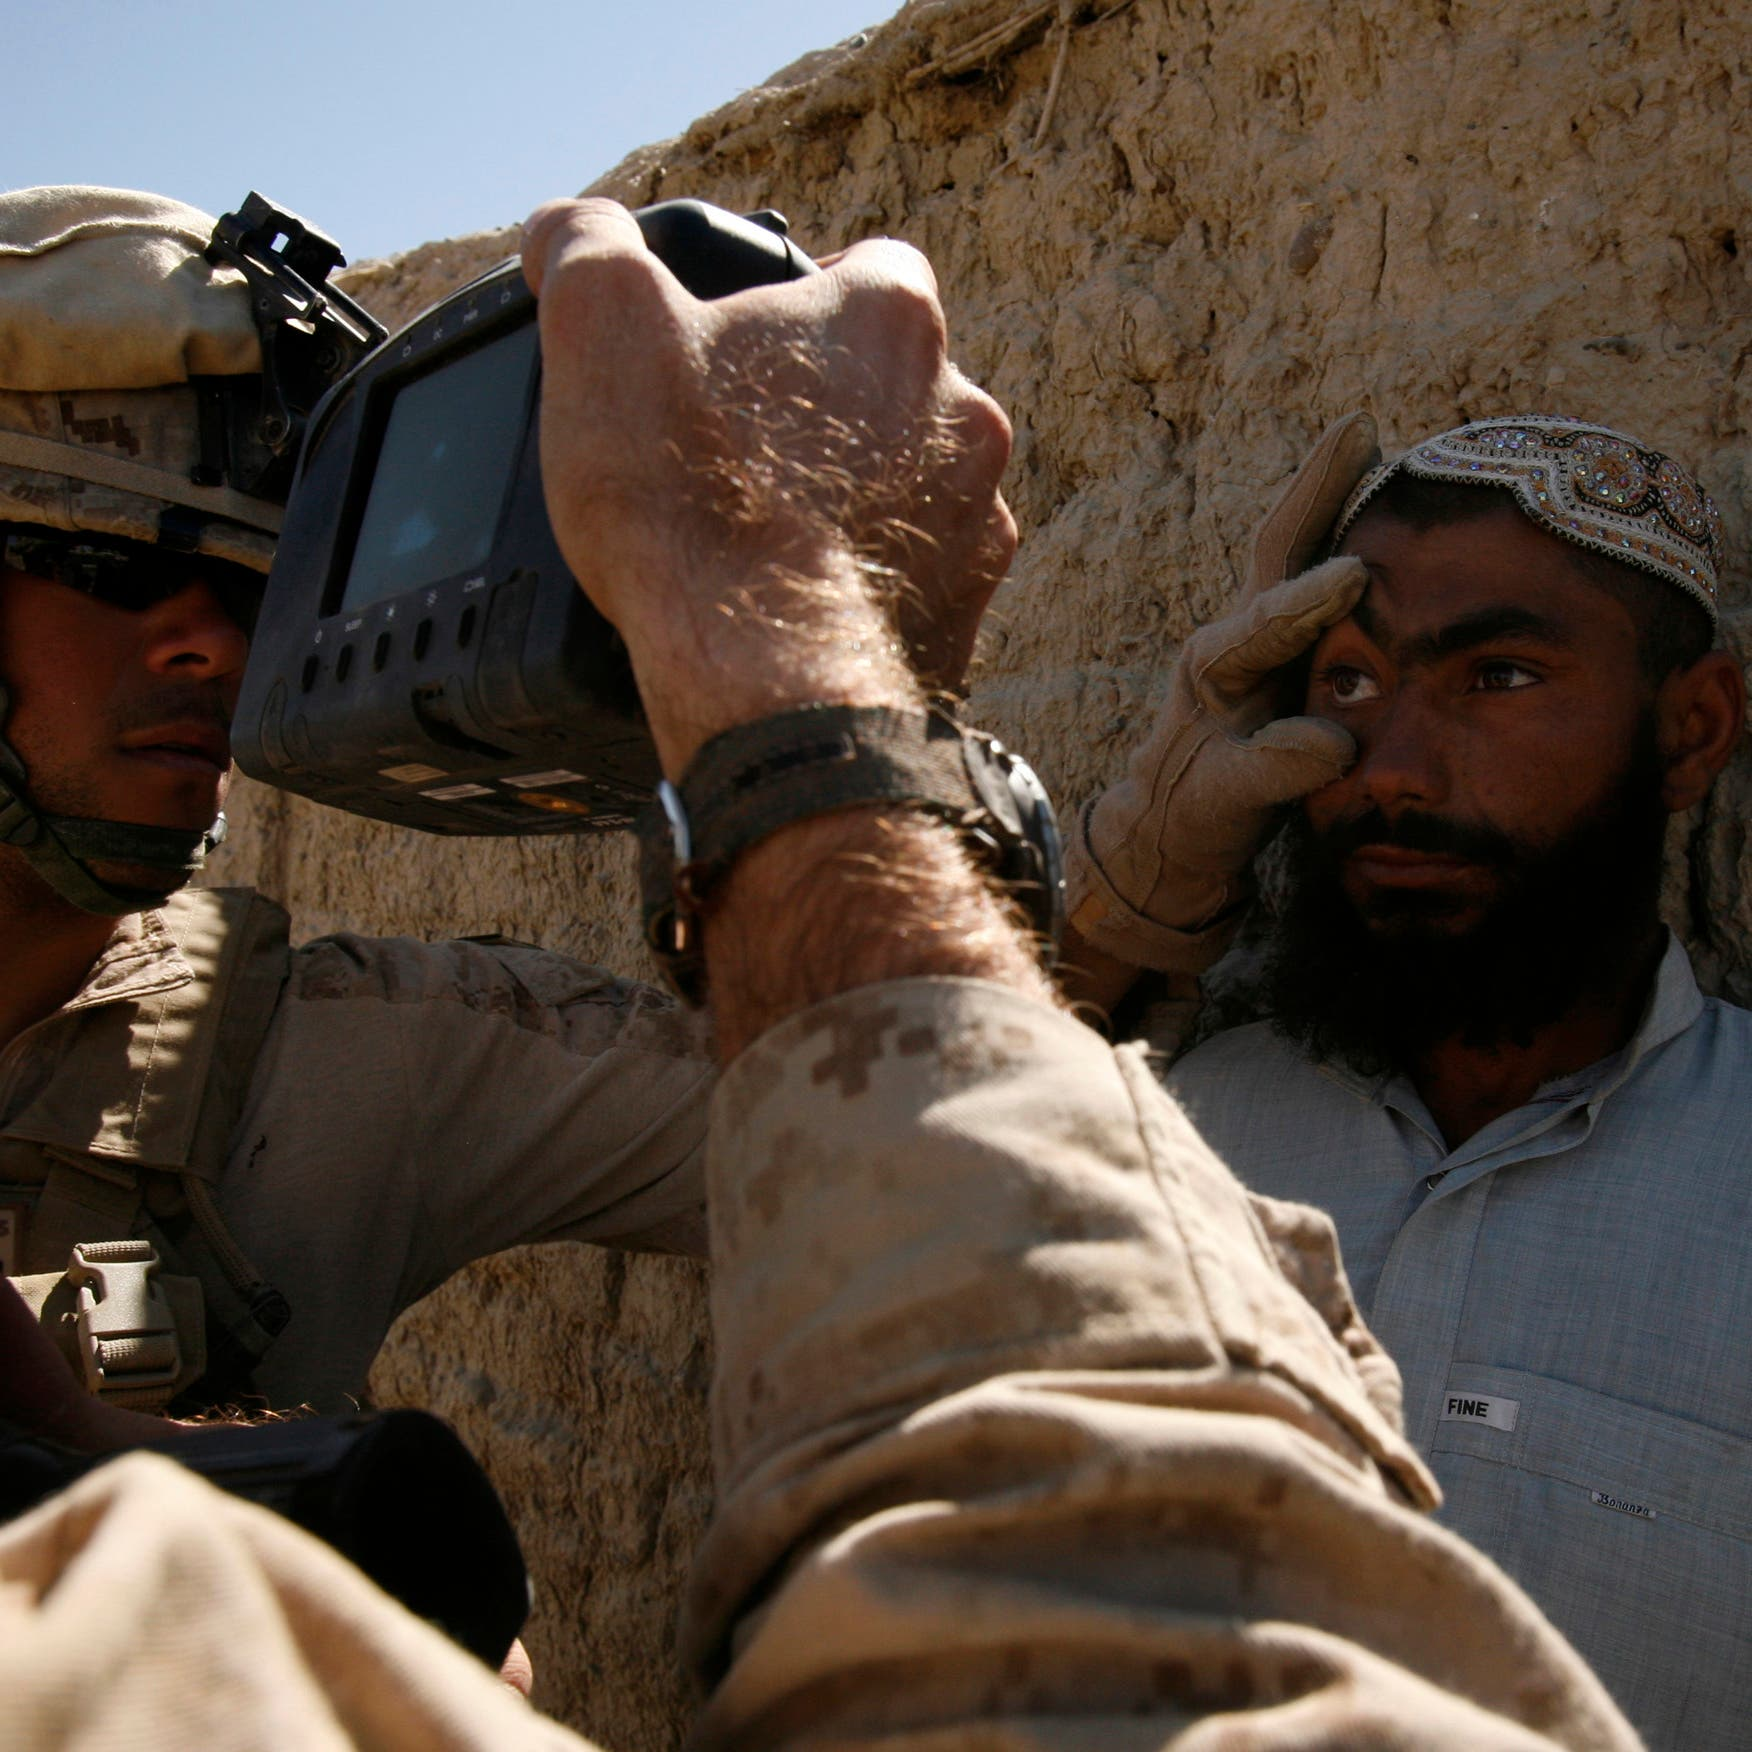 Taliban seizes military biometric devices, may use it to ID US allies in Afghanistan